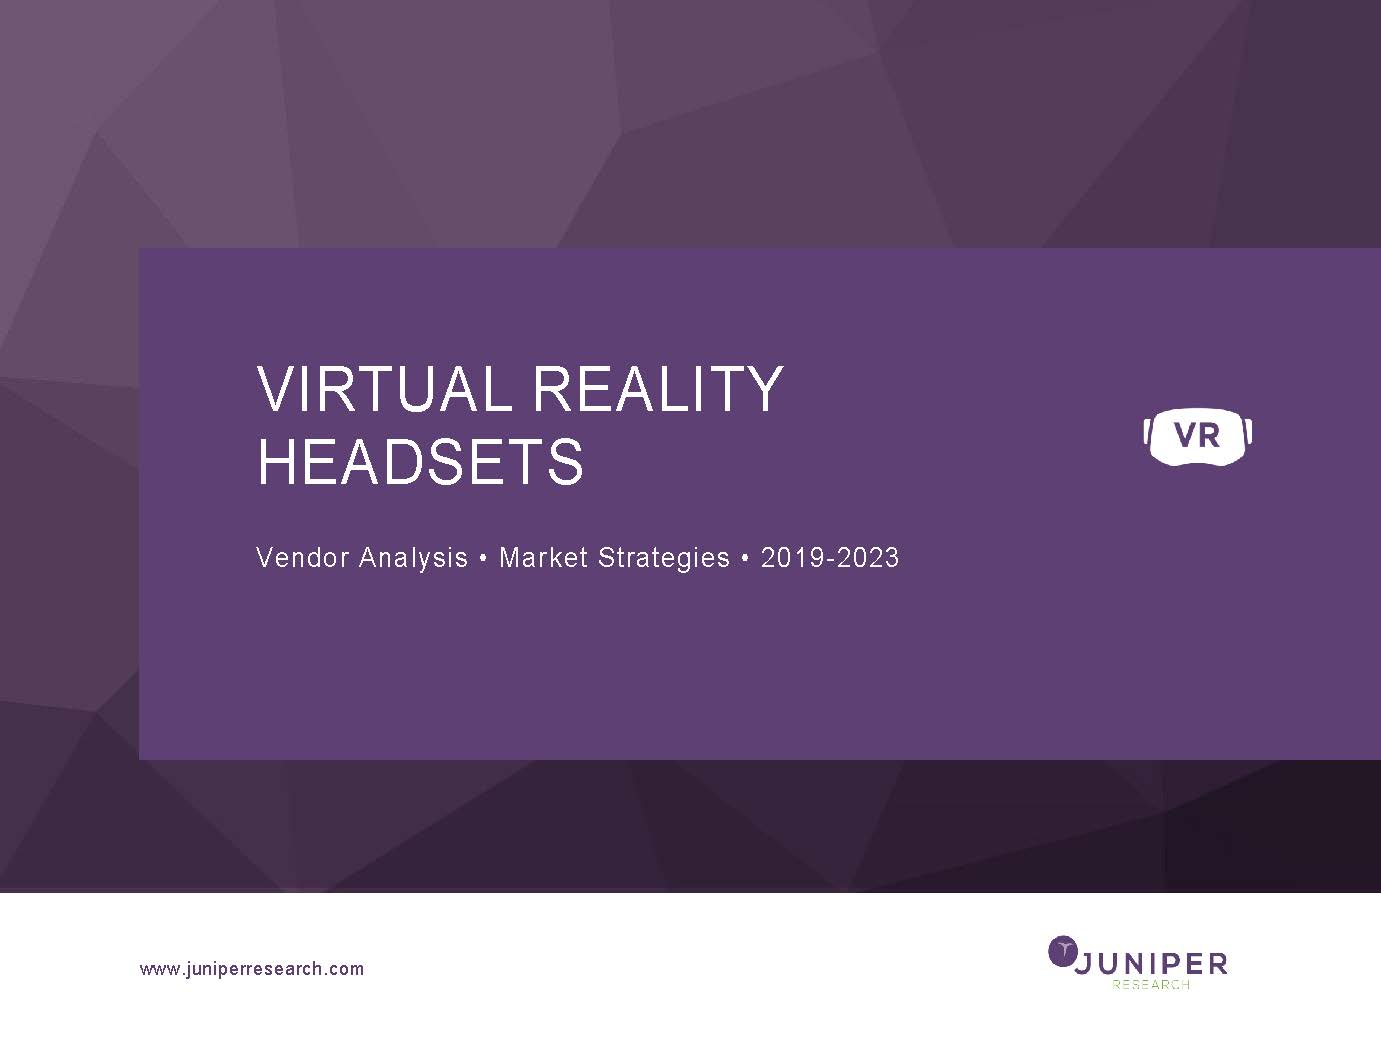 Virtual Reality Headsets: Vendor Analysis & Market Strategies 2019-2023 Full Research Suite